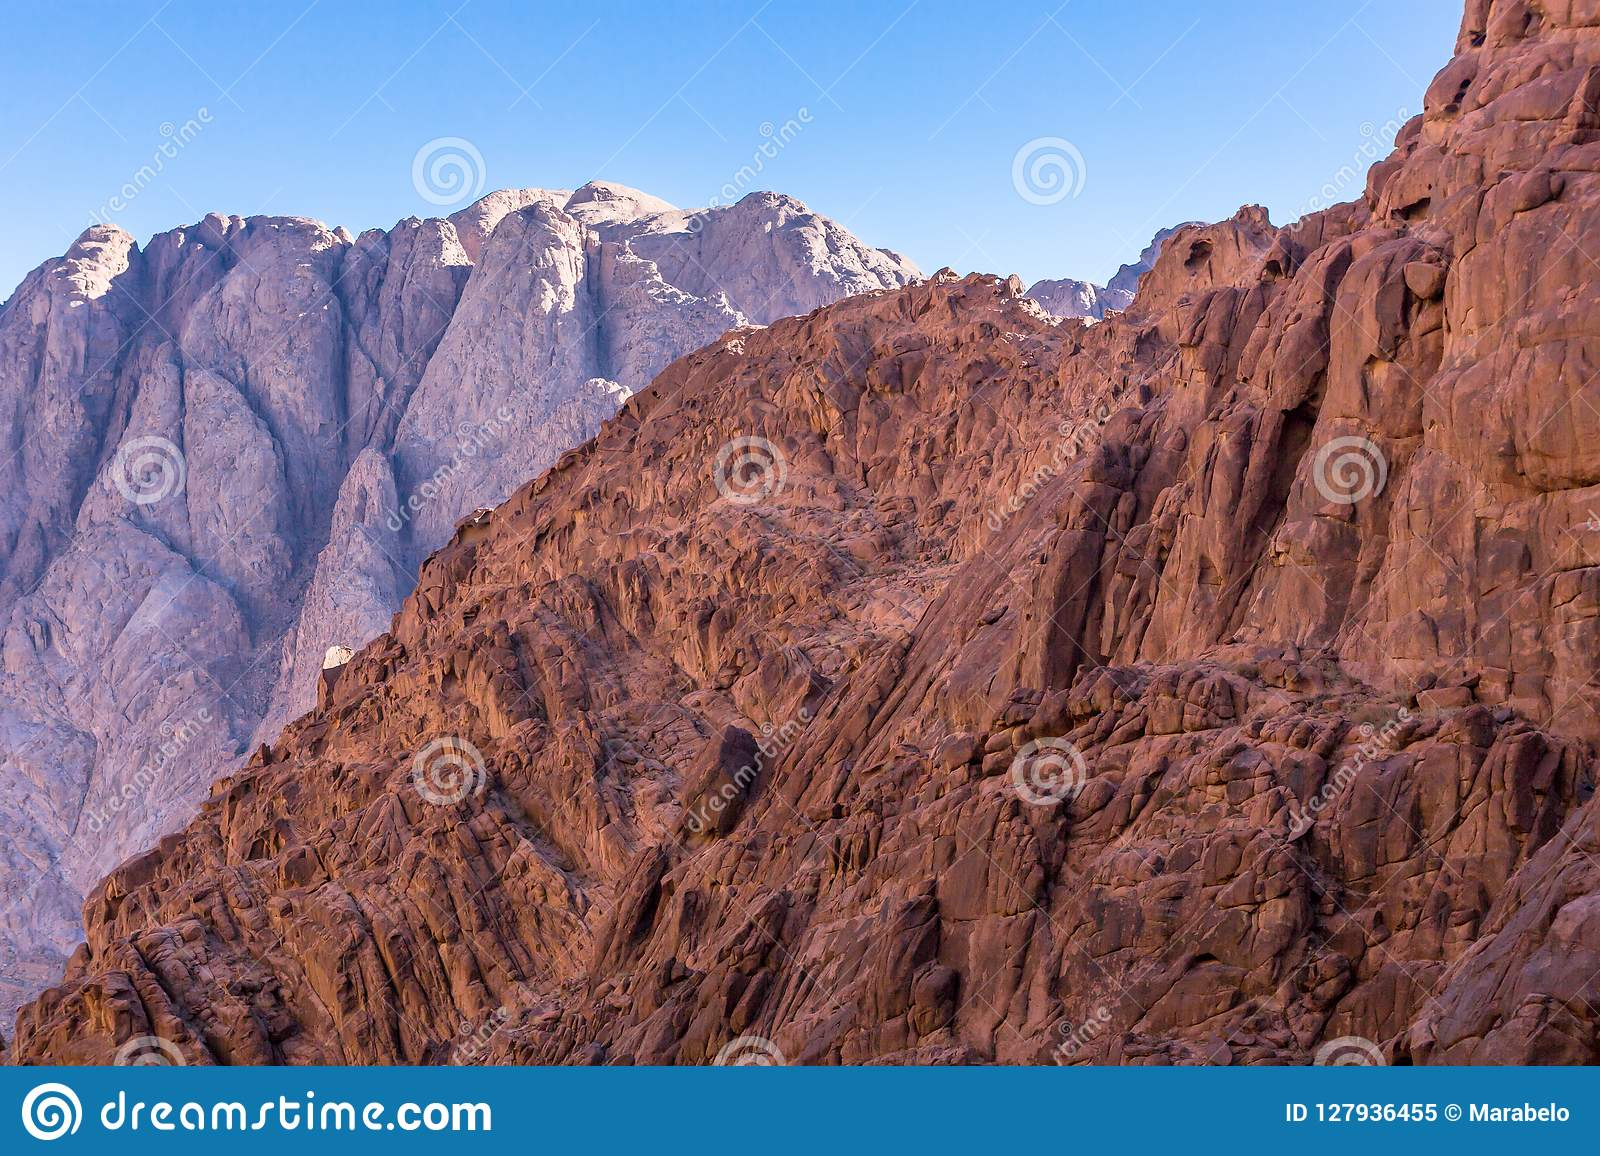 Mount Sinai, Mount Moses In Egypt  Stock Image - Image of